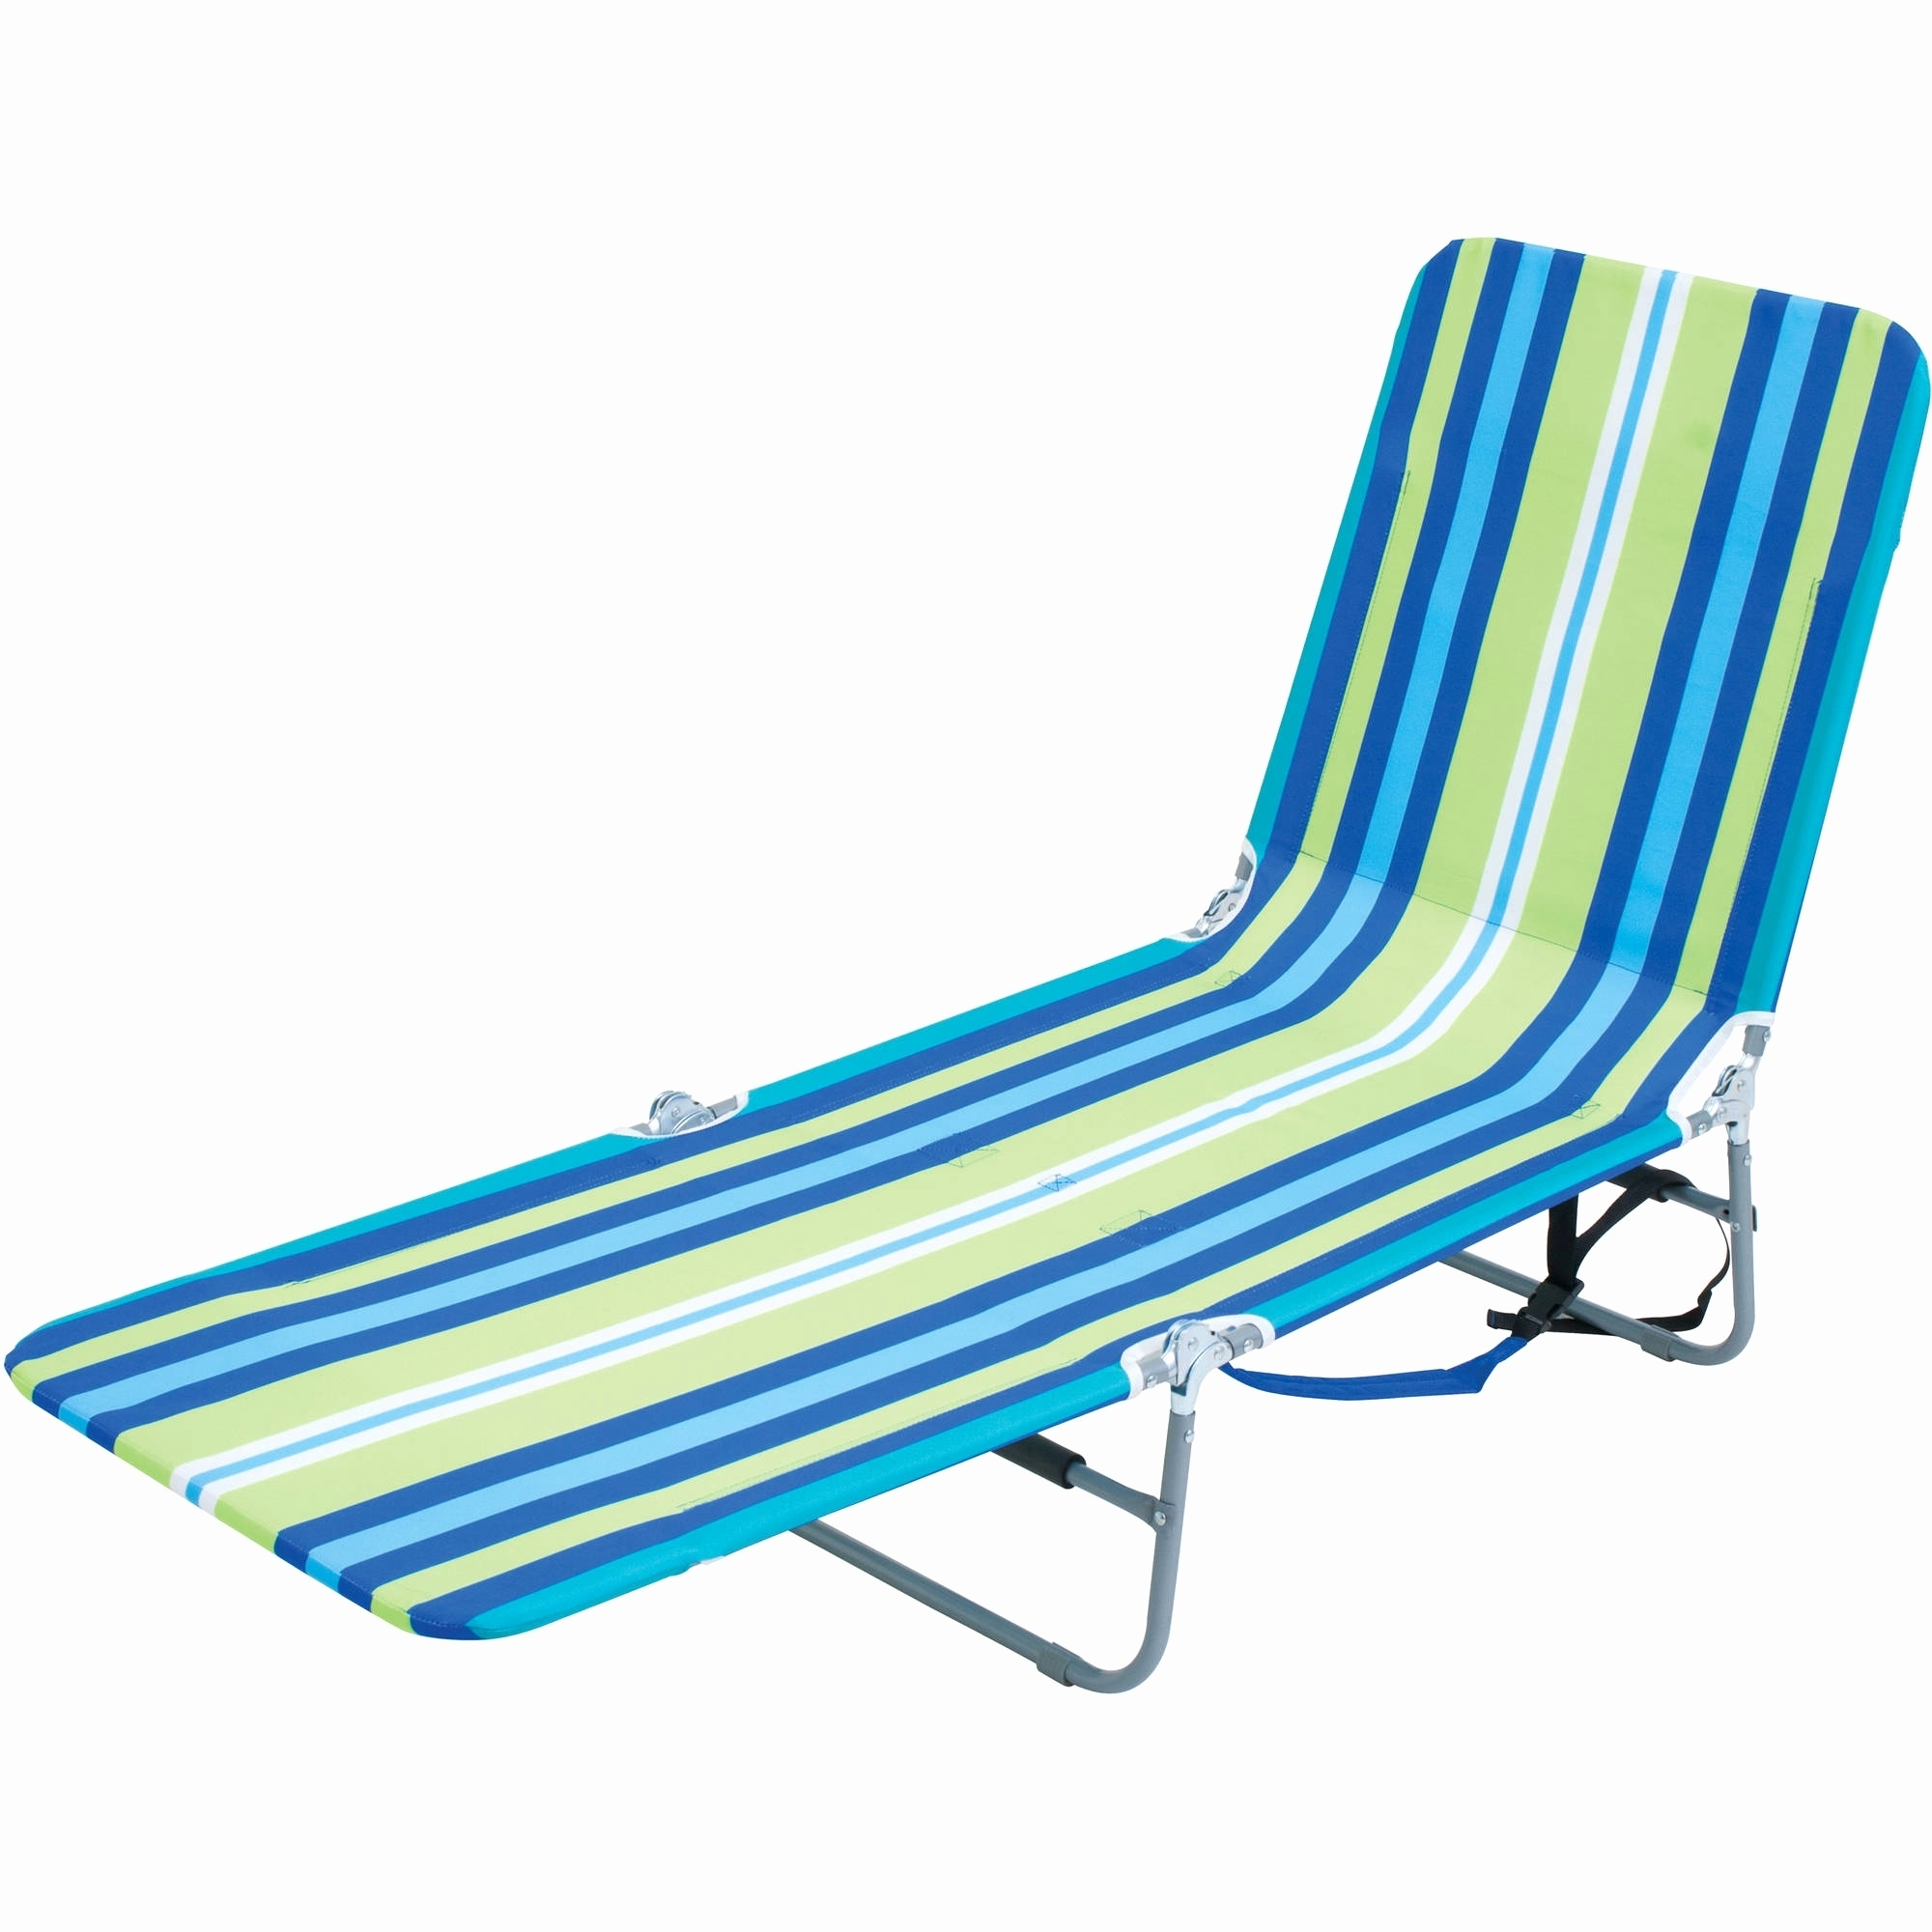 Picture 10 Of 30 – Outdoor Lounge Chairs Walmart Inspirational For Well Known Walmart Outdoor Chaise Lounges (View 11 of 15)